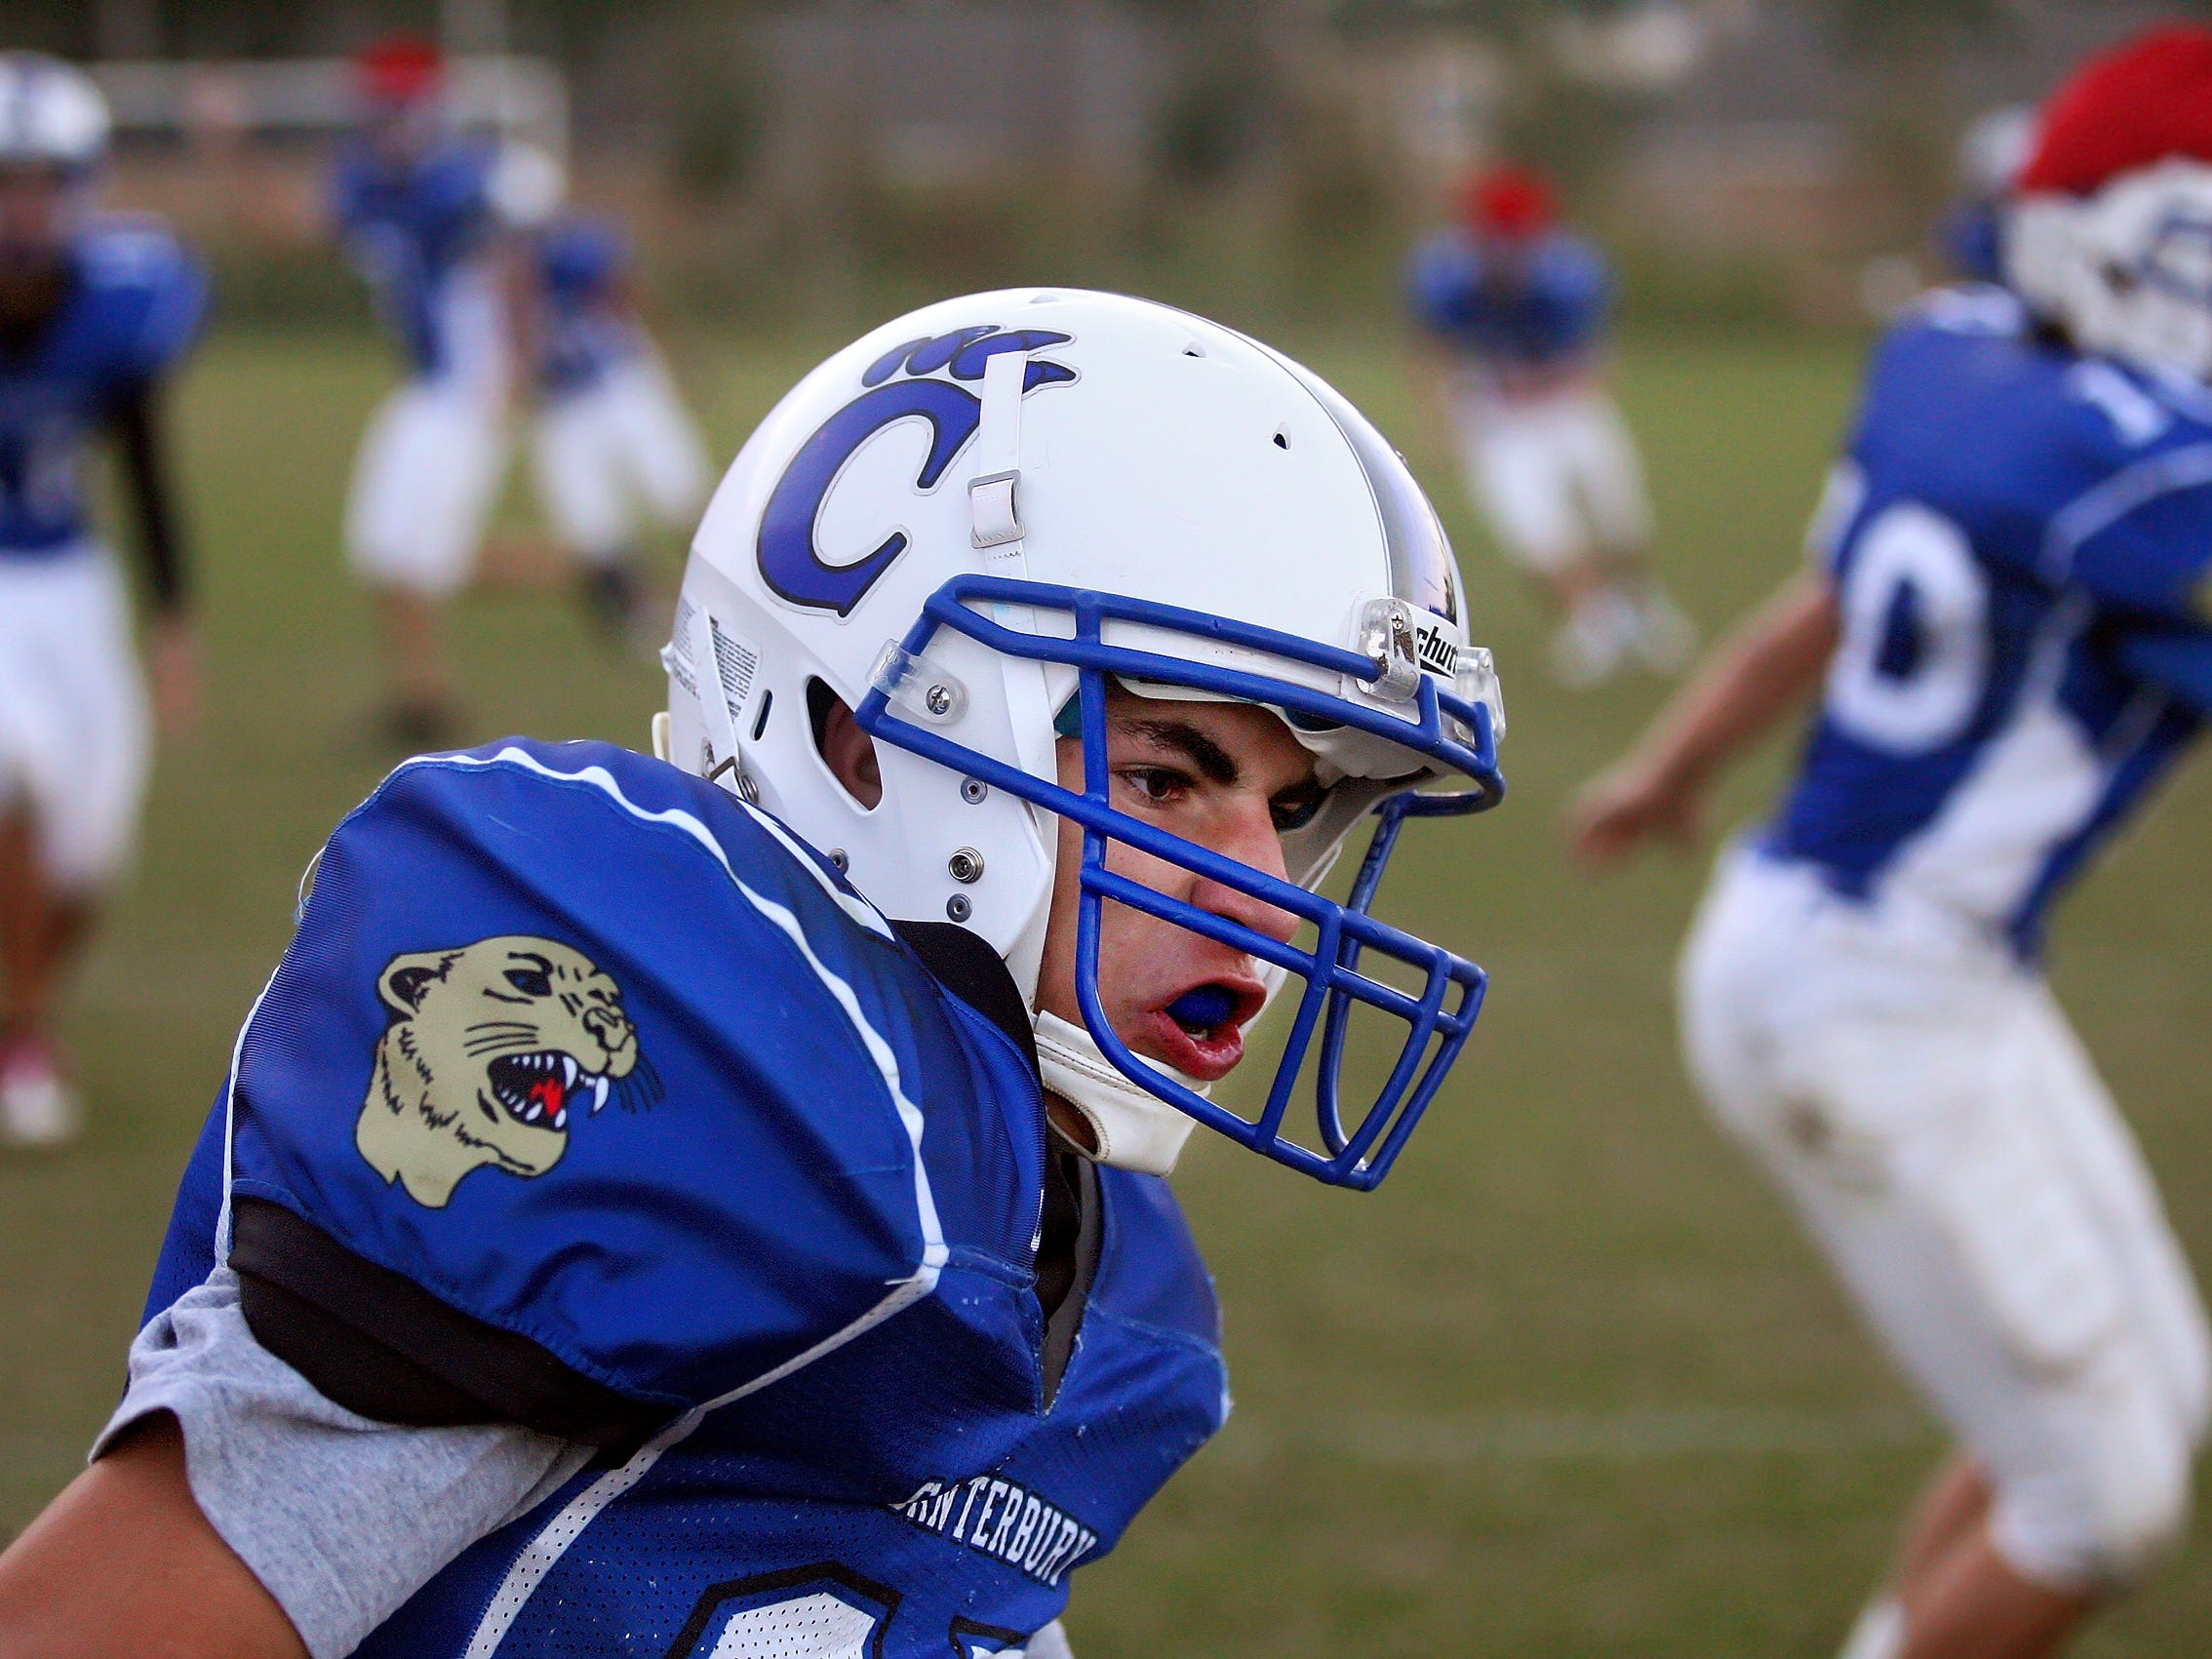 Canterbury is one of several schools moving on with a new head coach this season.